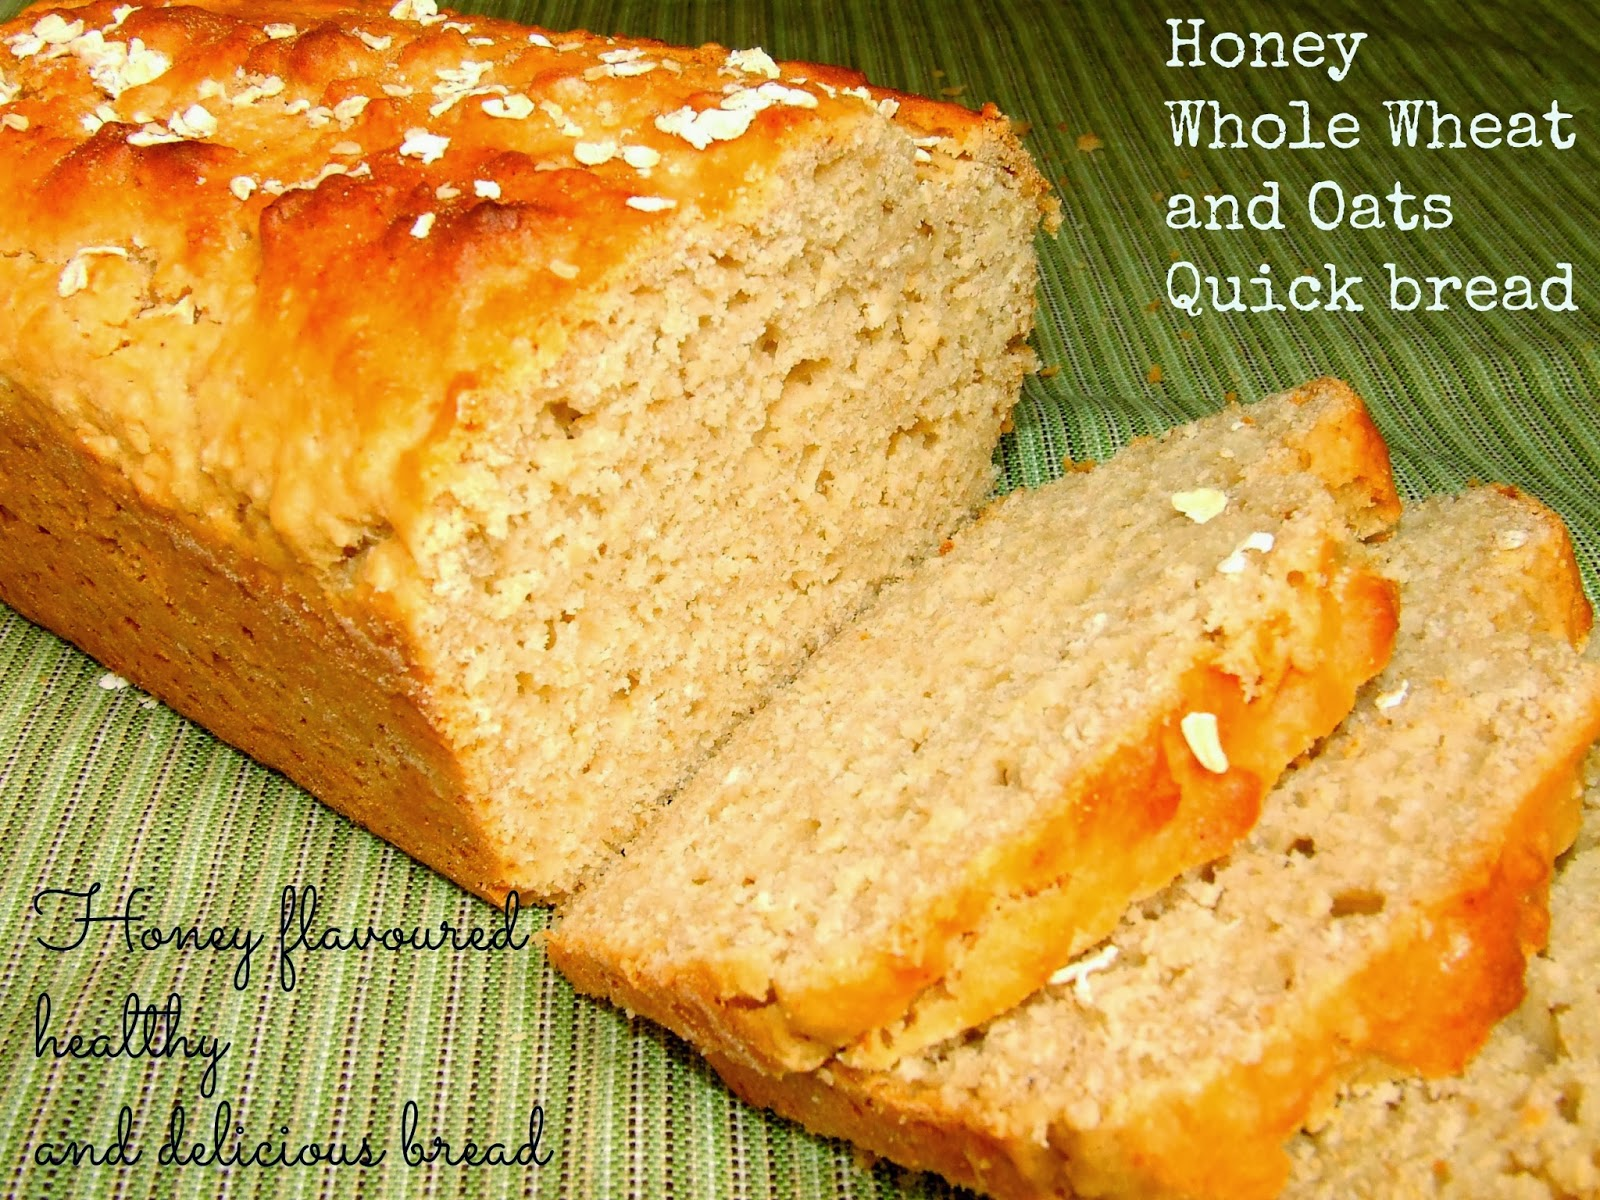 AMBROSIA: Honey Whole Wheat and Oats Quick Bread